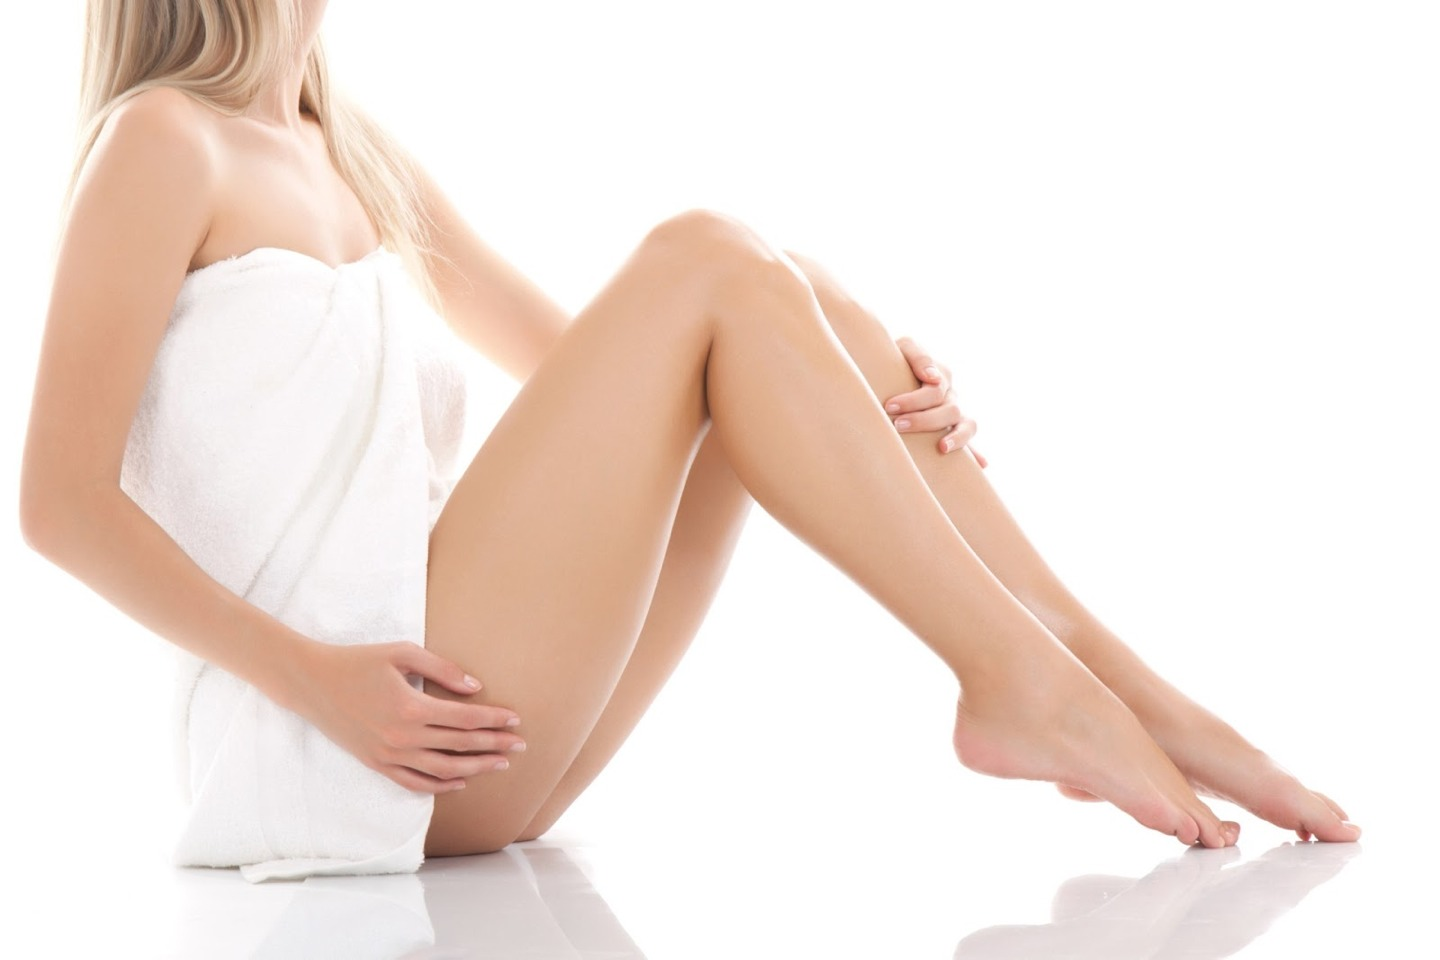 Shaving with conditioner makes your legs smooth for almost 3 days and no irritation